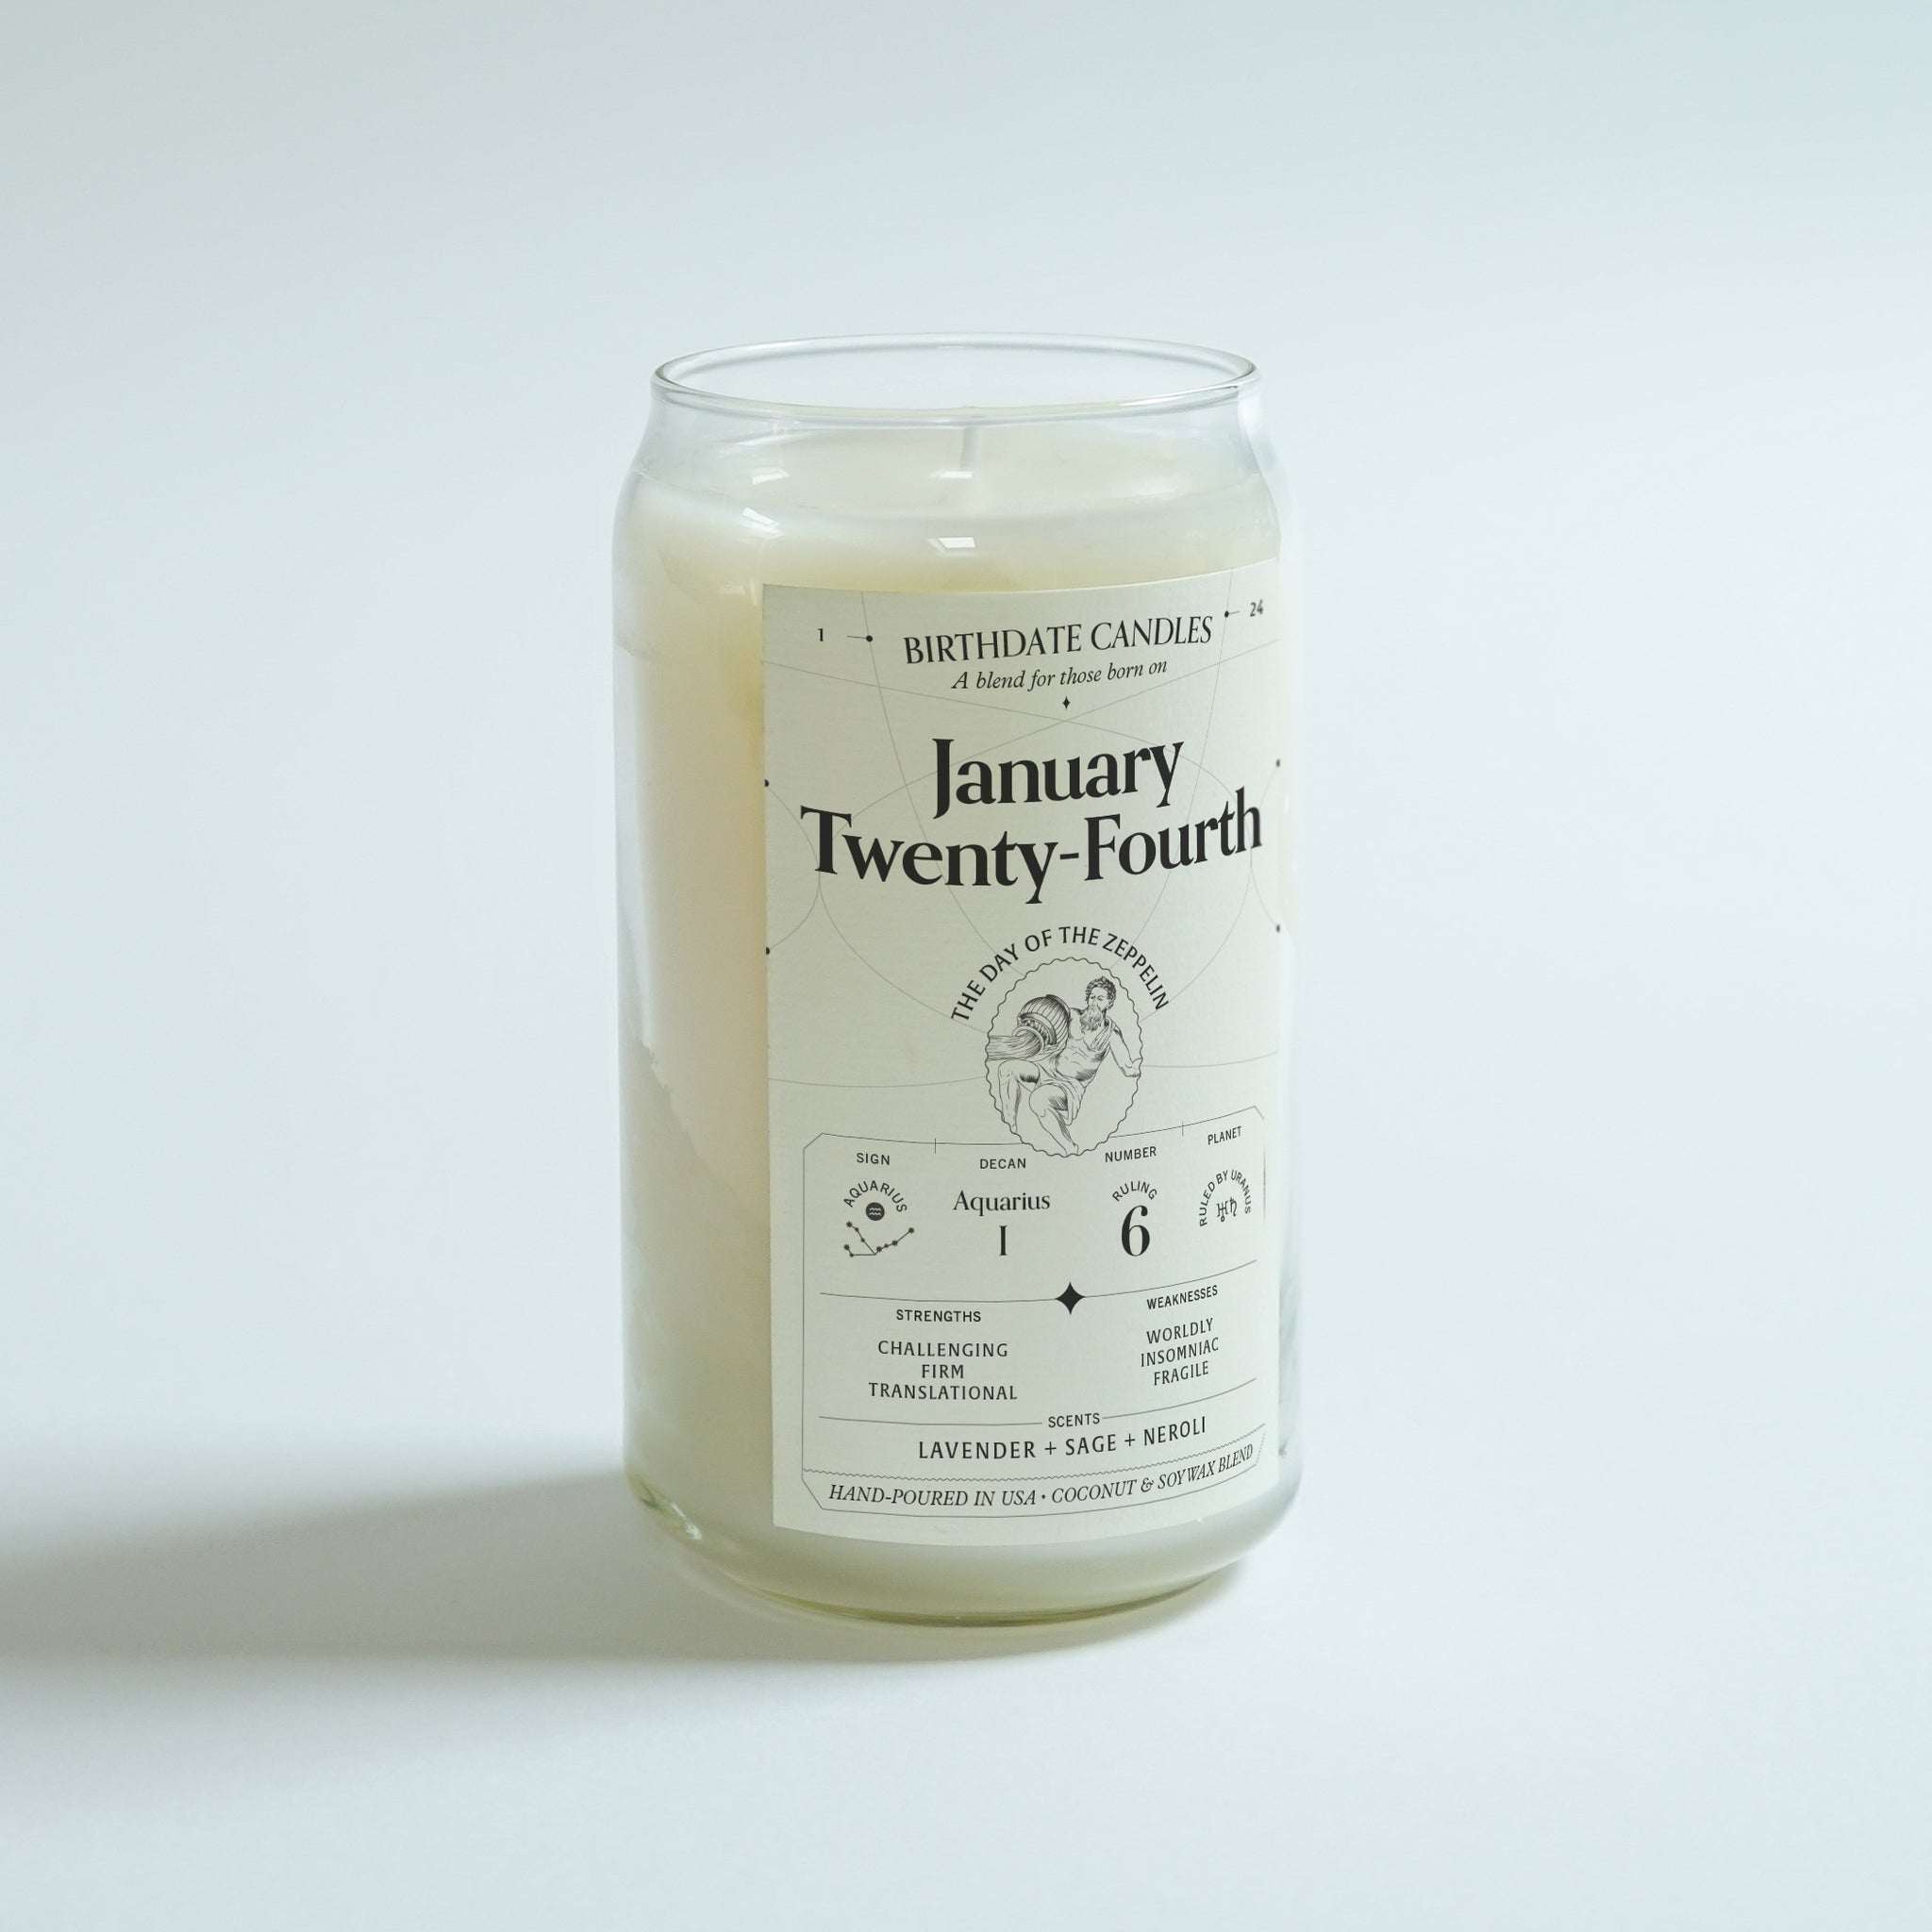 The January Twenty-Fourth Birthday Candle